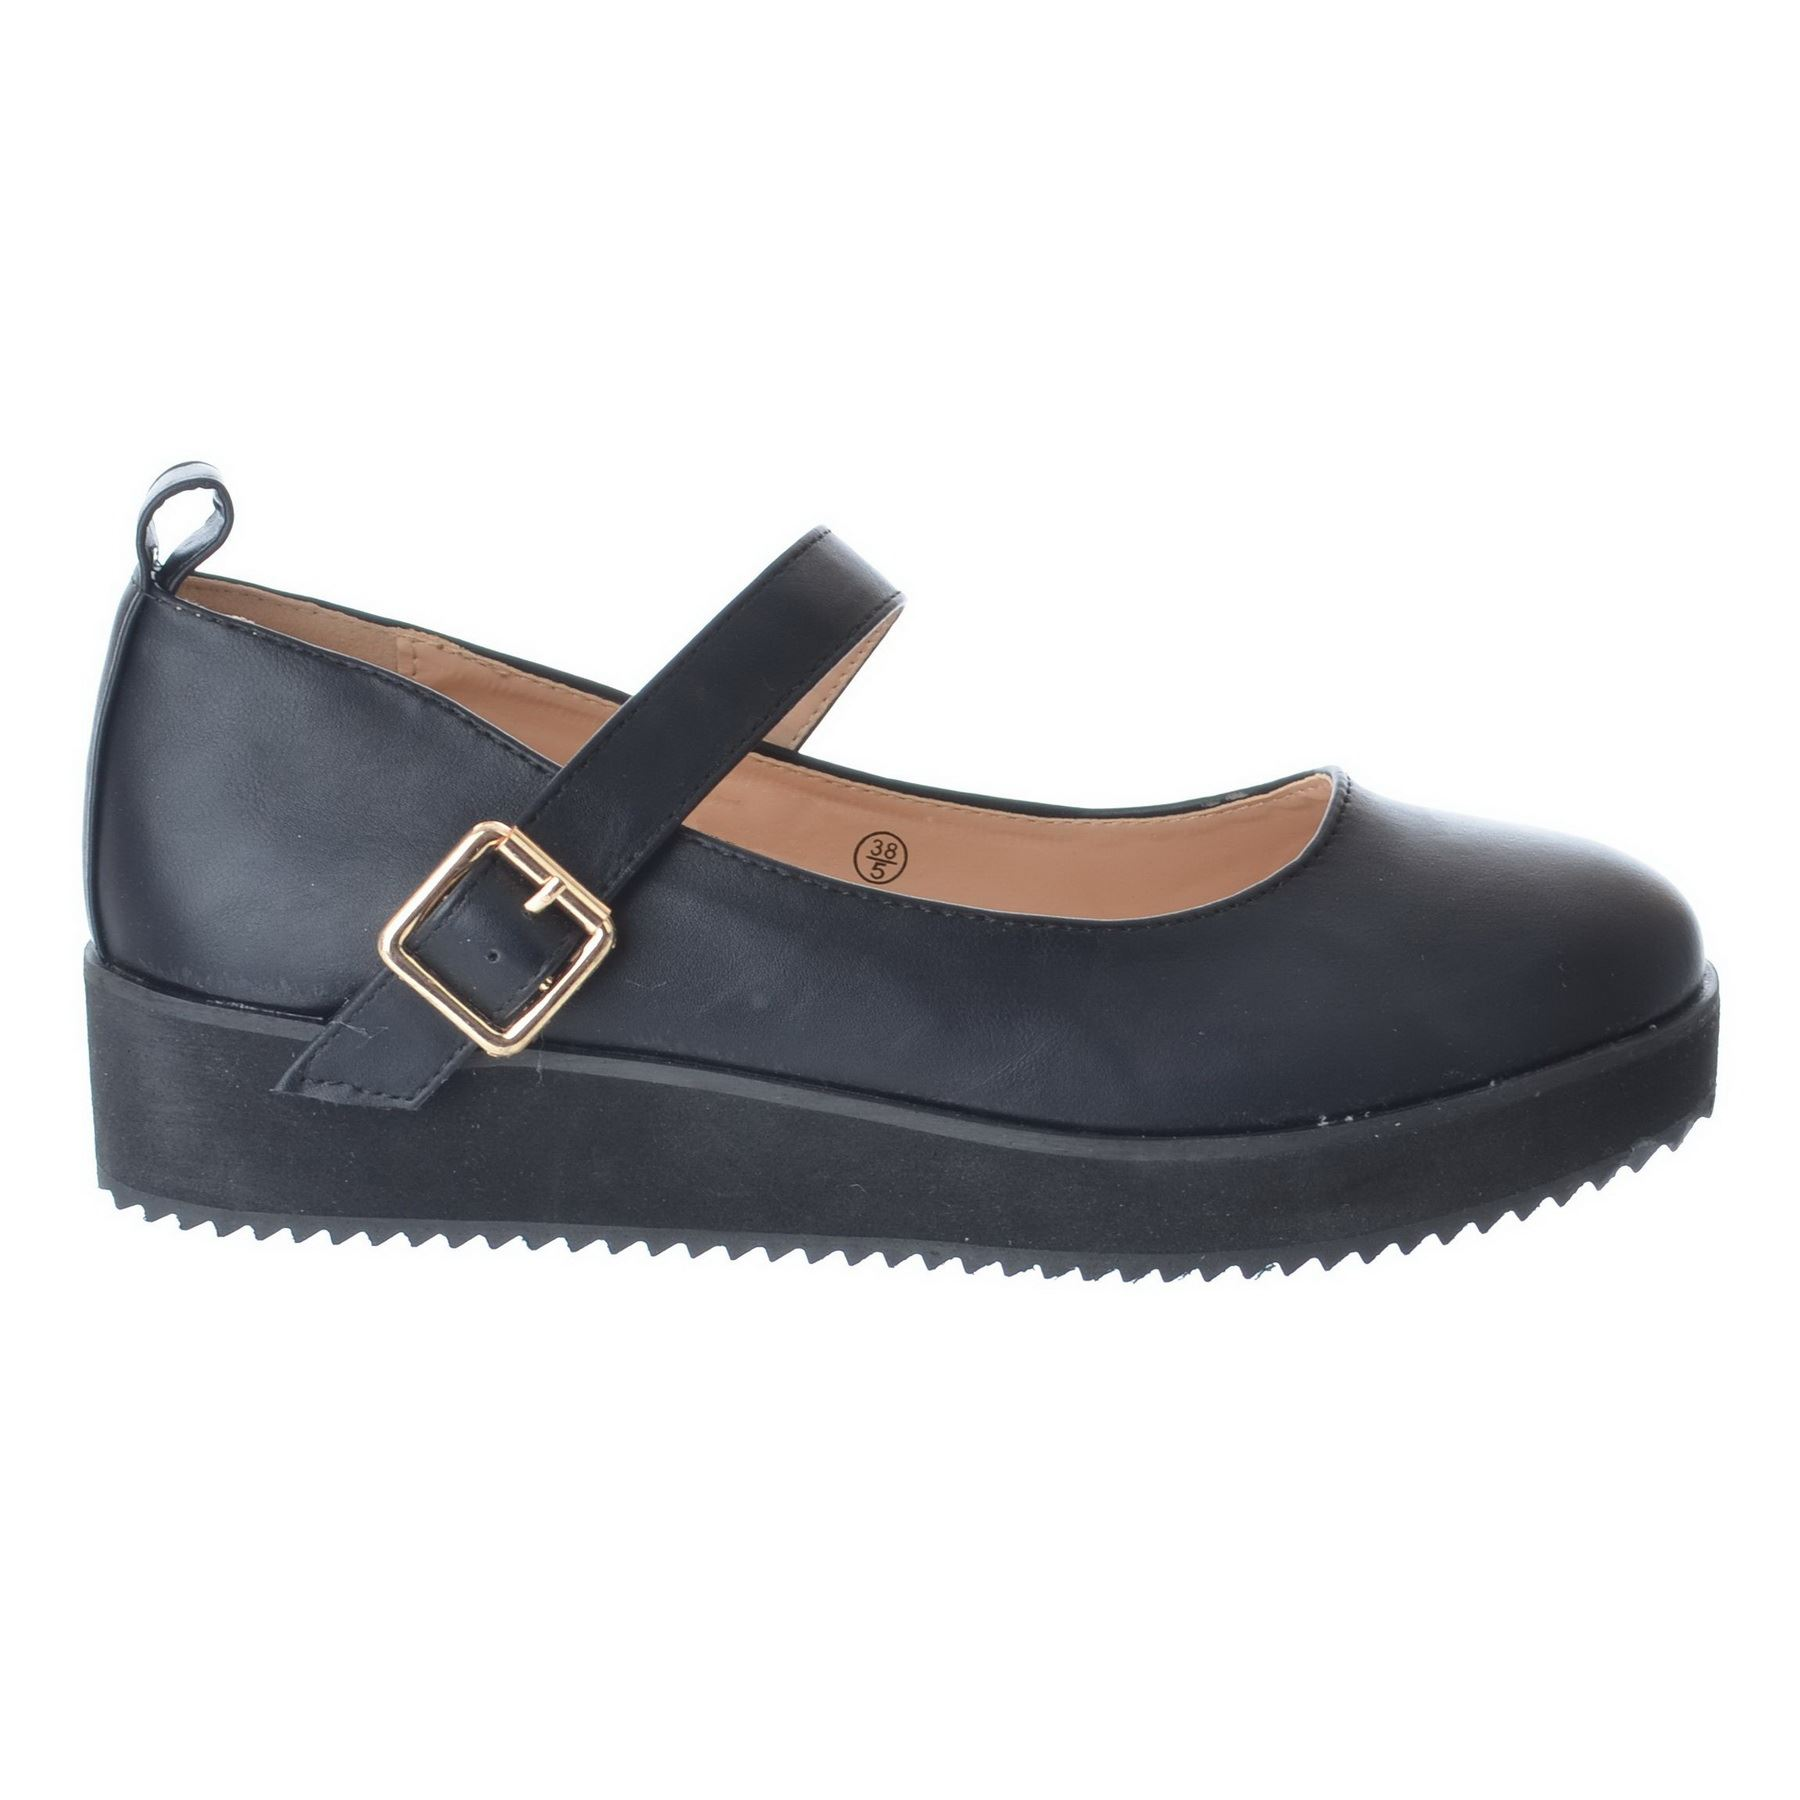 LADIES WOMENS GIRLS MARY JANE PLATFORM SHOES BUCKLE SCHOOL FLAT PUMPS WORK SIZE